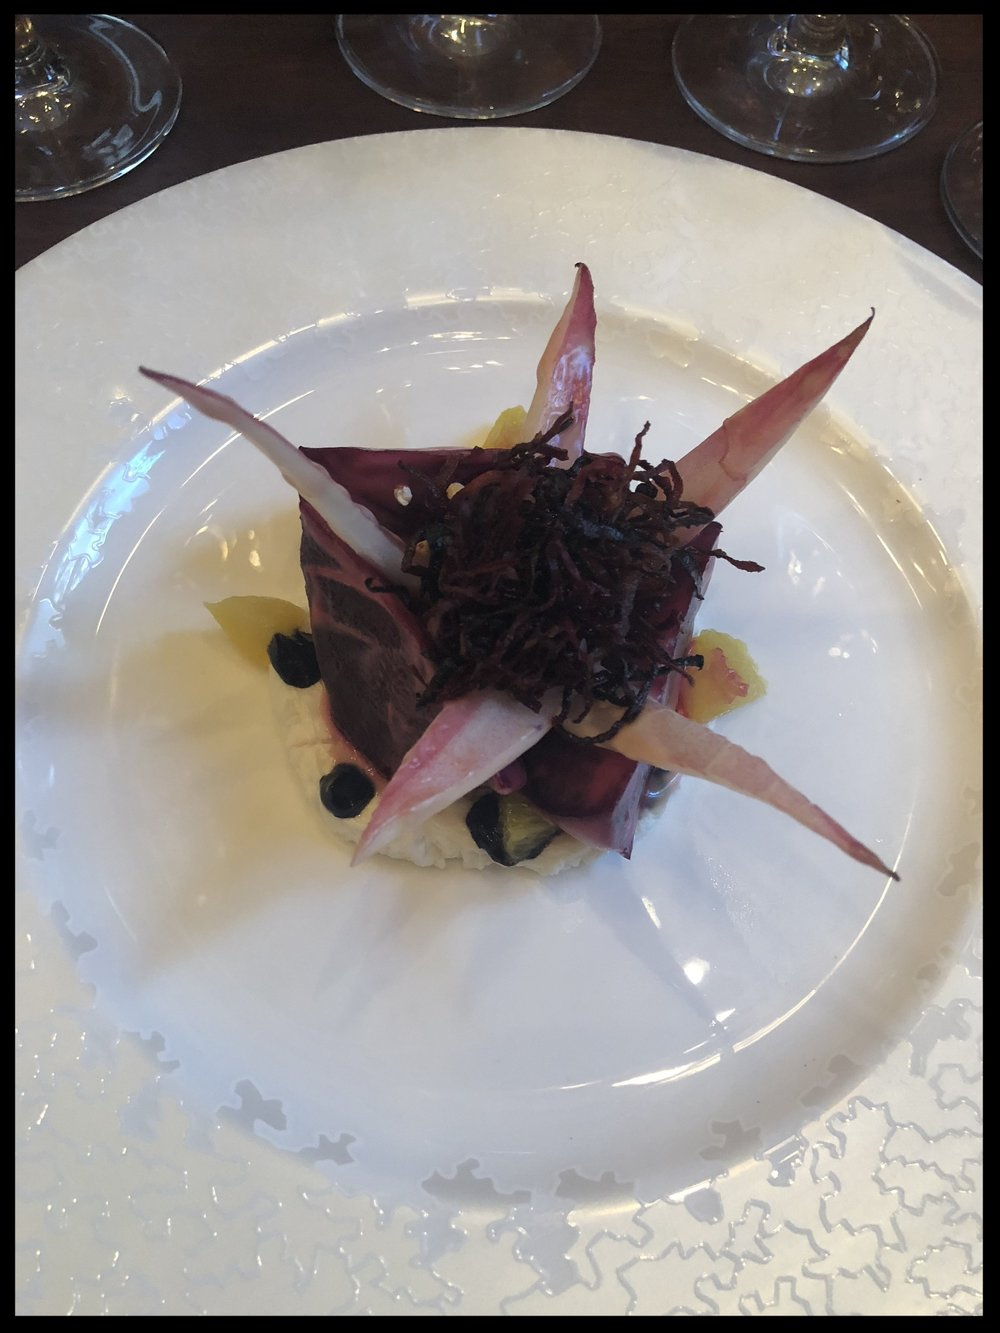 Beetroot salad with Creamed Goat's cheese, cracked buckwheat, red chicory and orange (Image: Sumita Sarma)